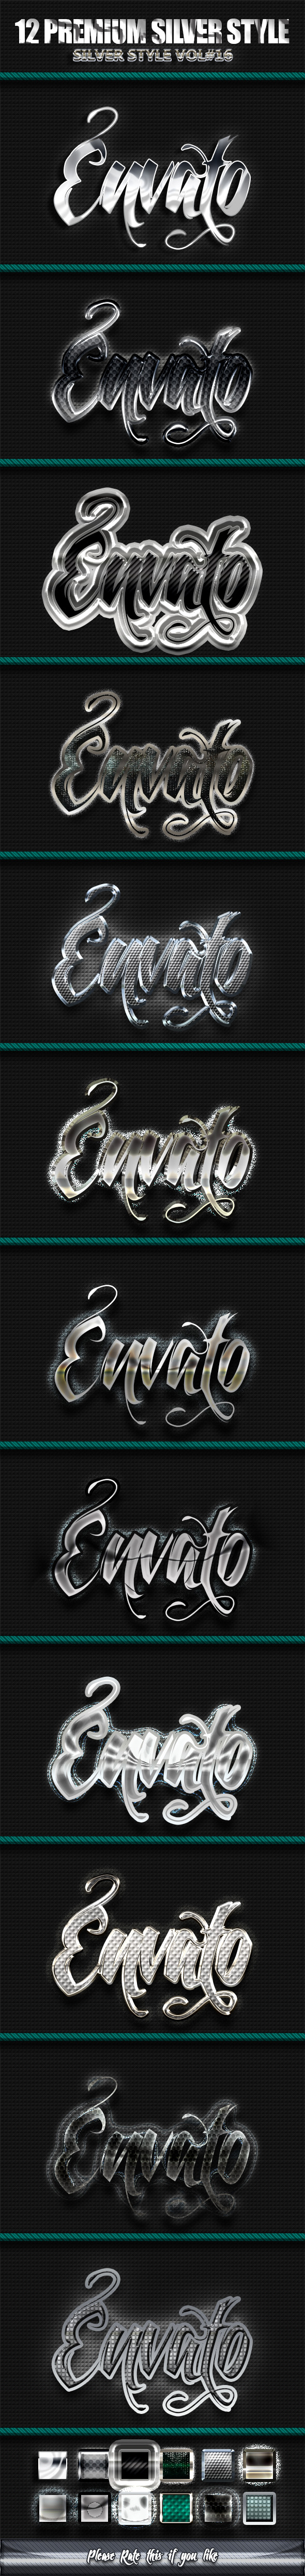 12 Photoshop SILVER Text Effect Styles Vol 16 - Text Effects Styles